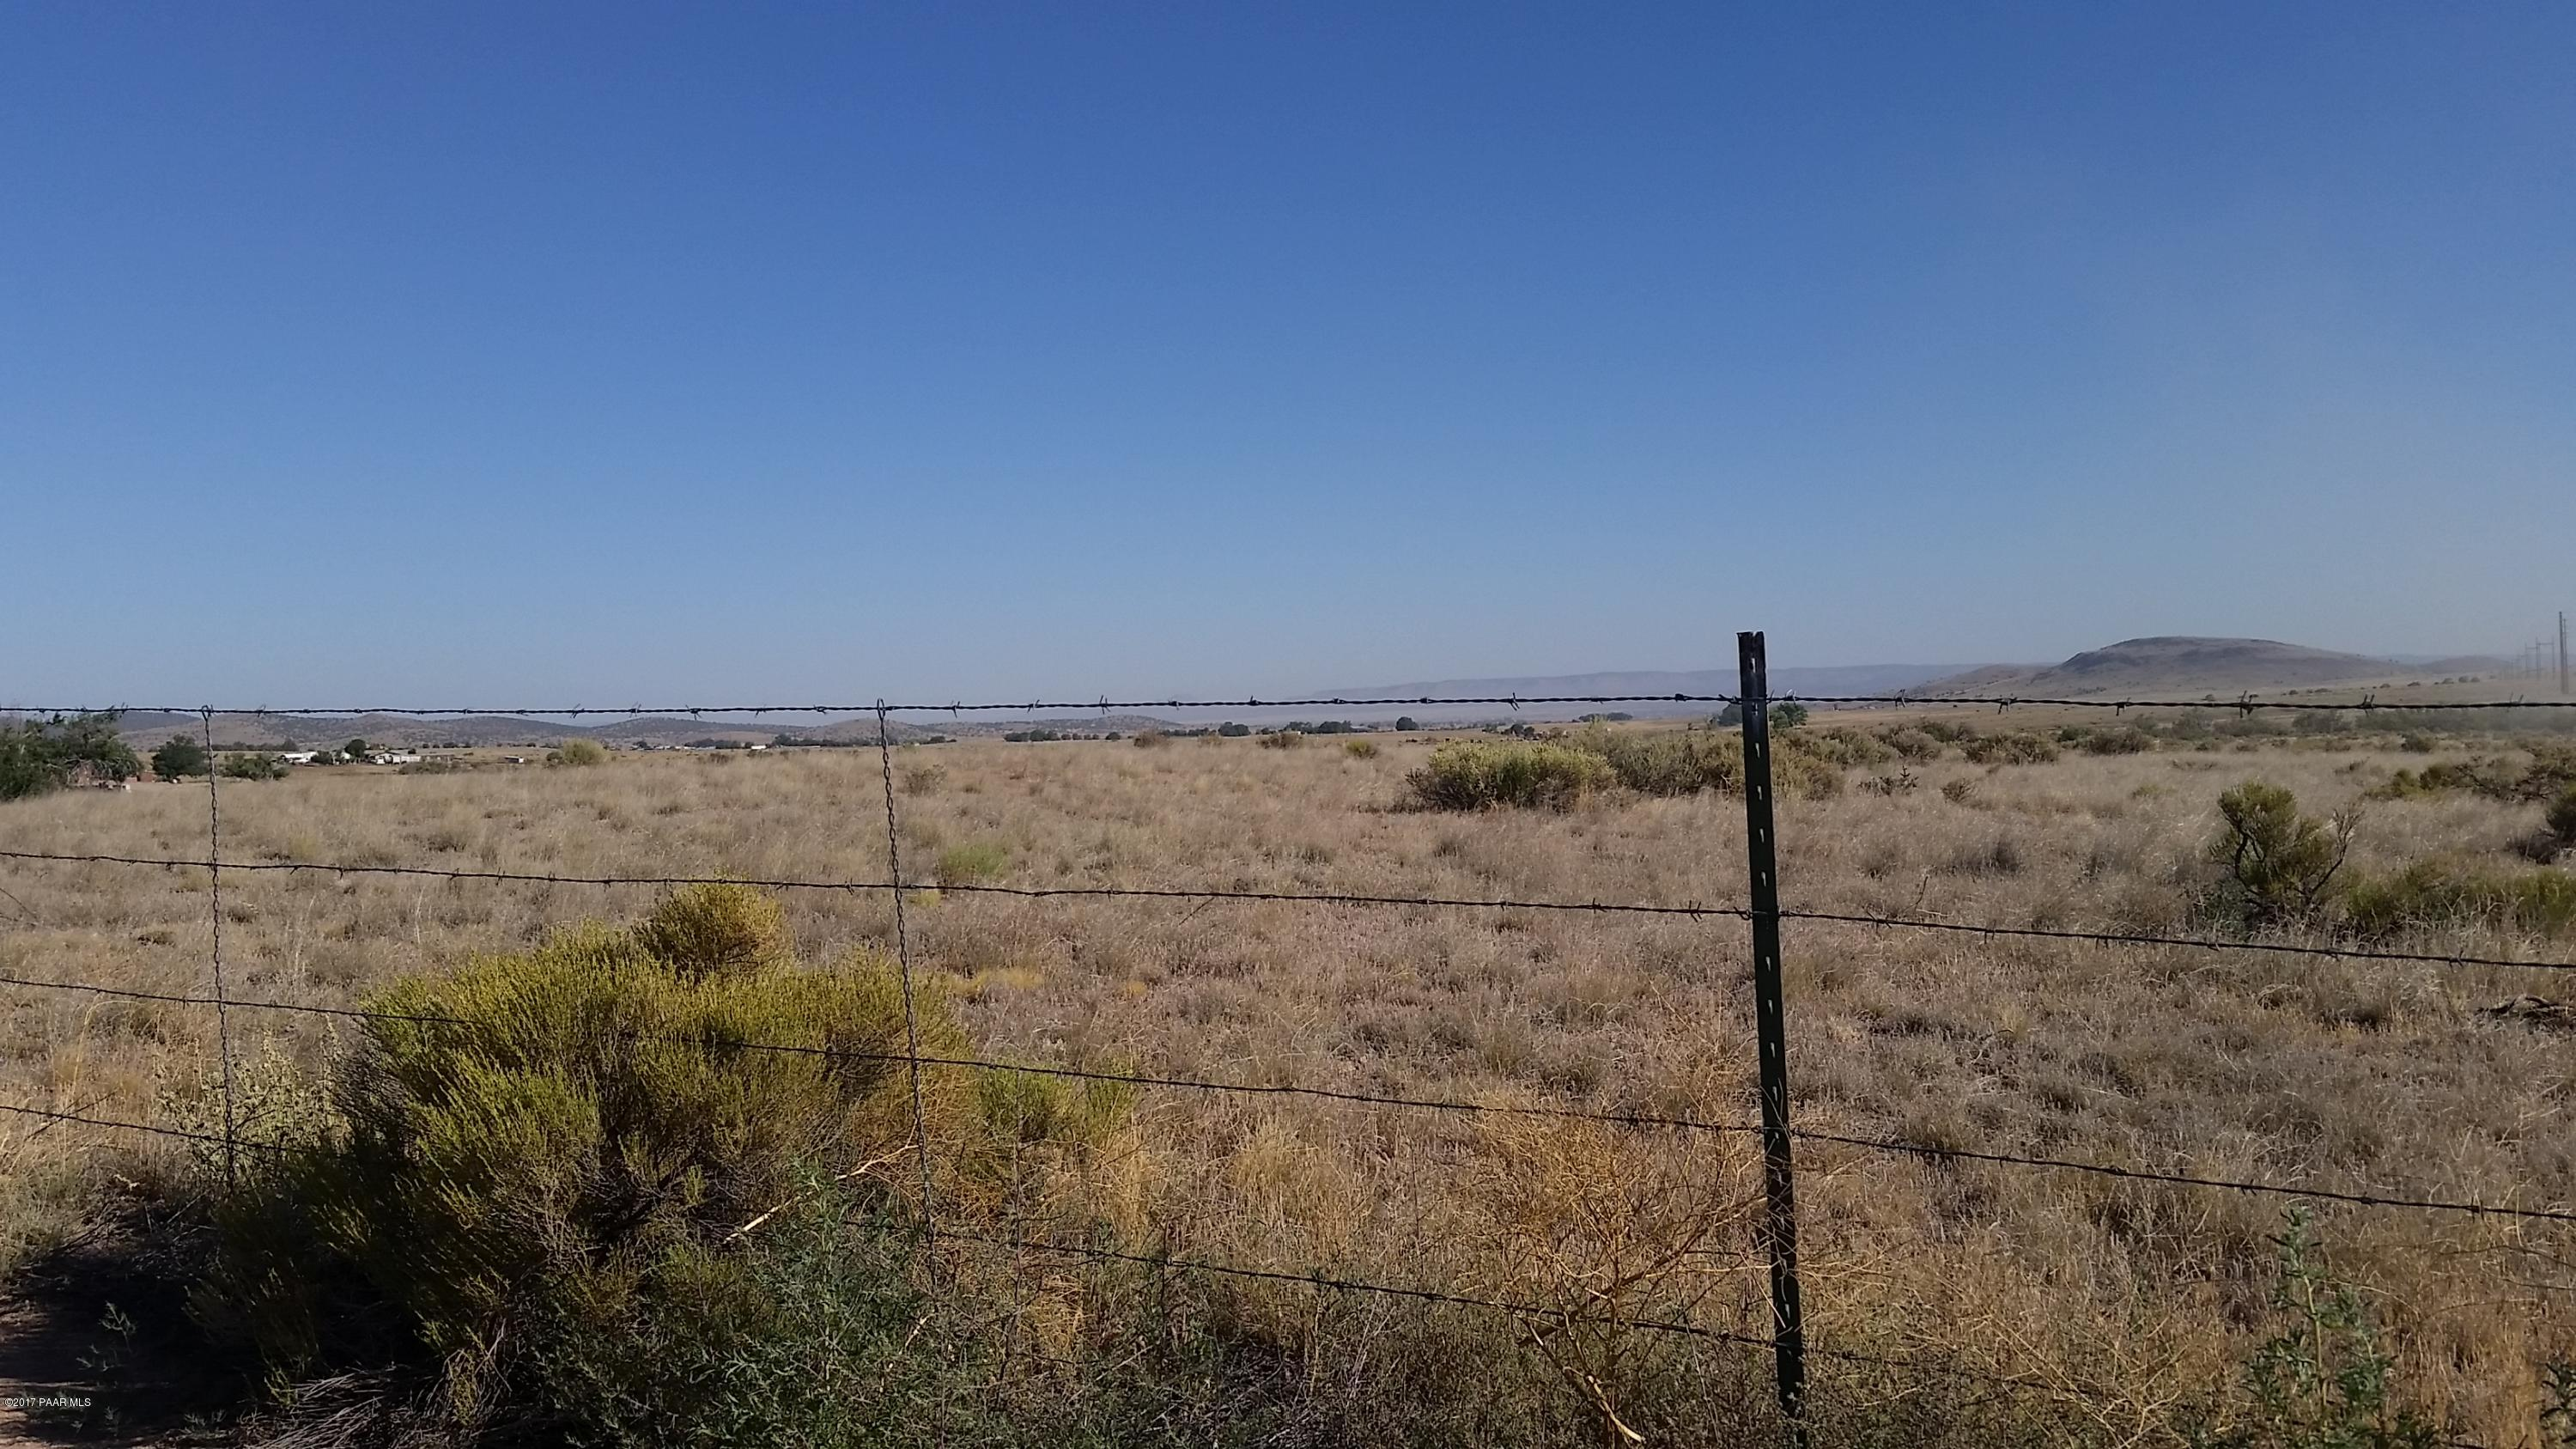 00 Jerome Junction # N/a, Chino Valley AZ 86323